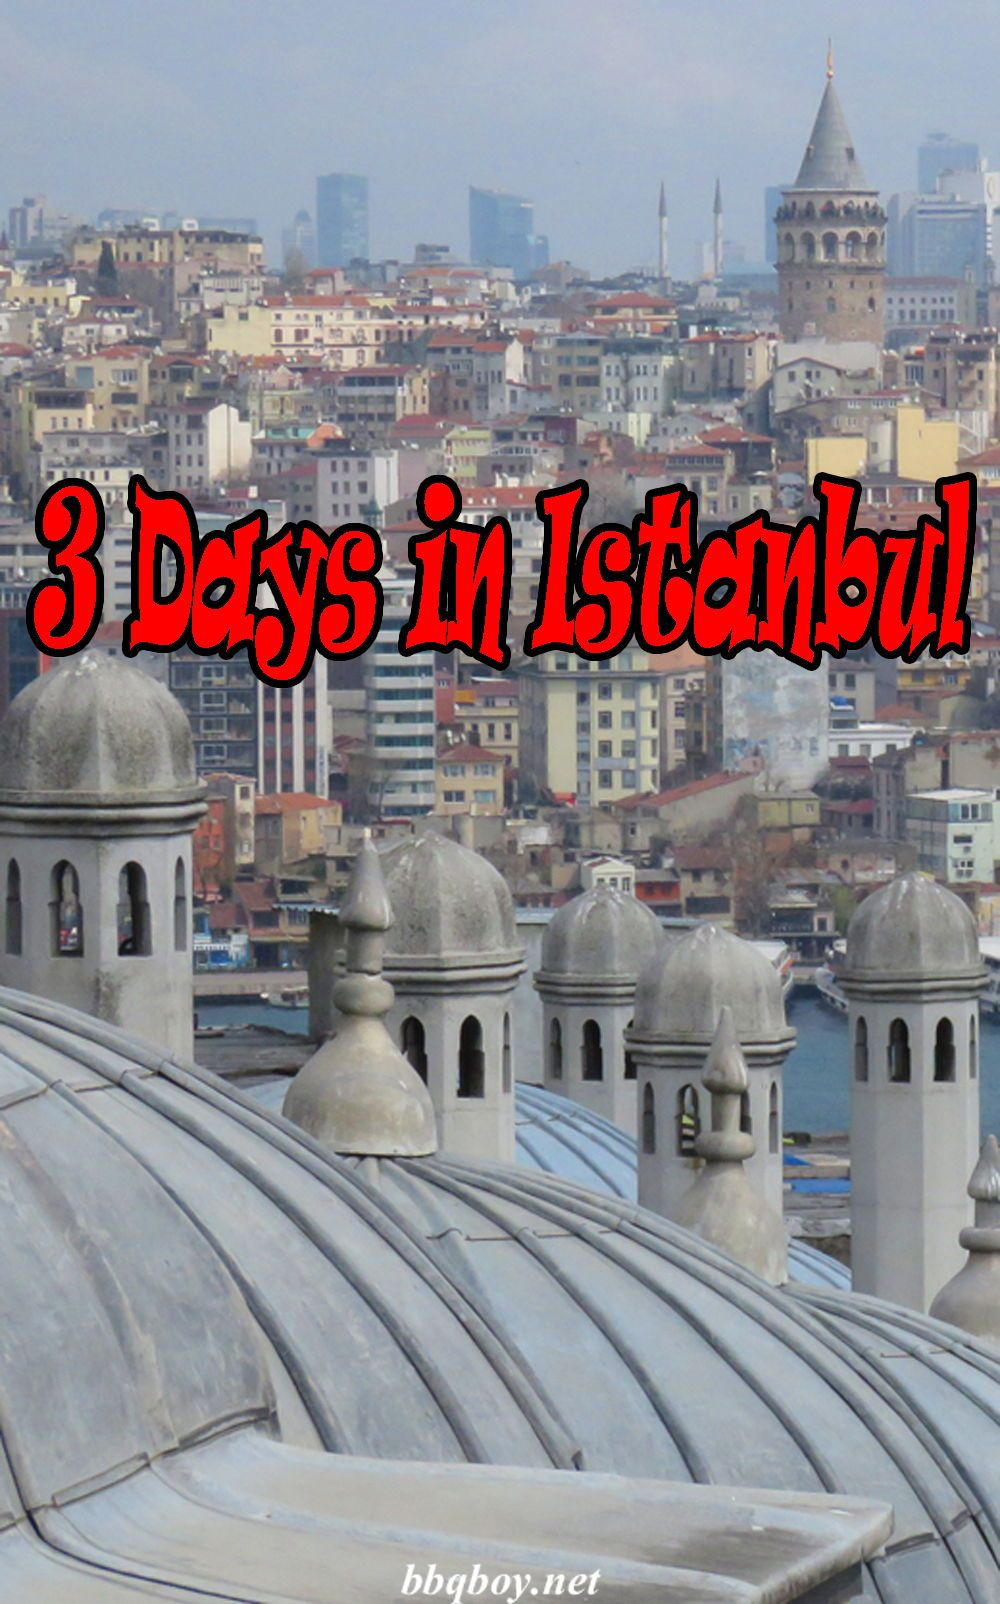 3 Days In Istanbul The Travels Of Bbqboy And Spanky Travel England Travel Travel Guides